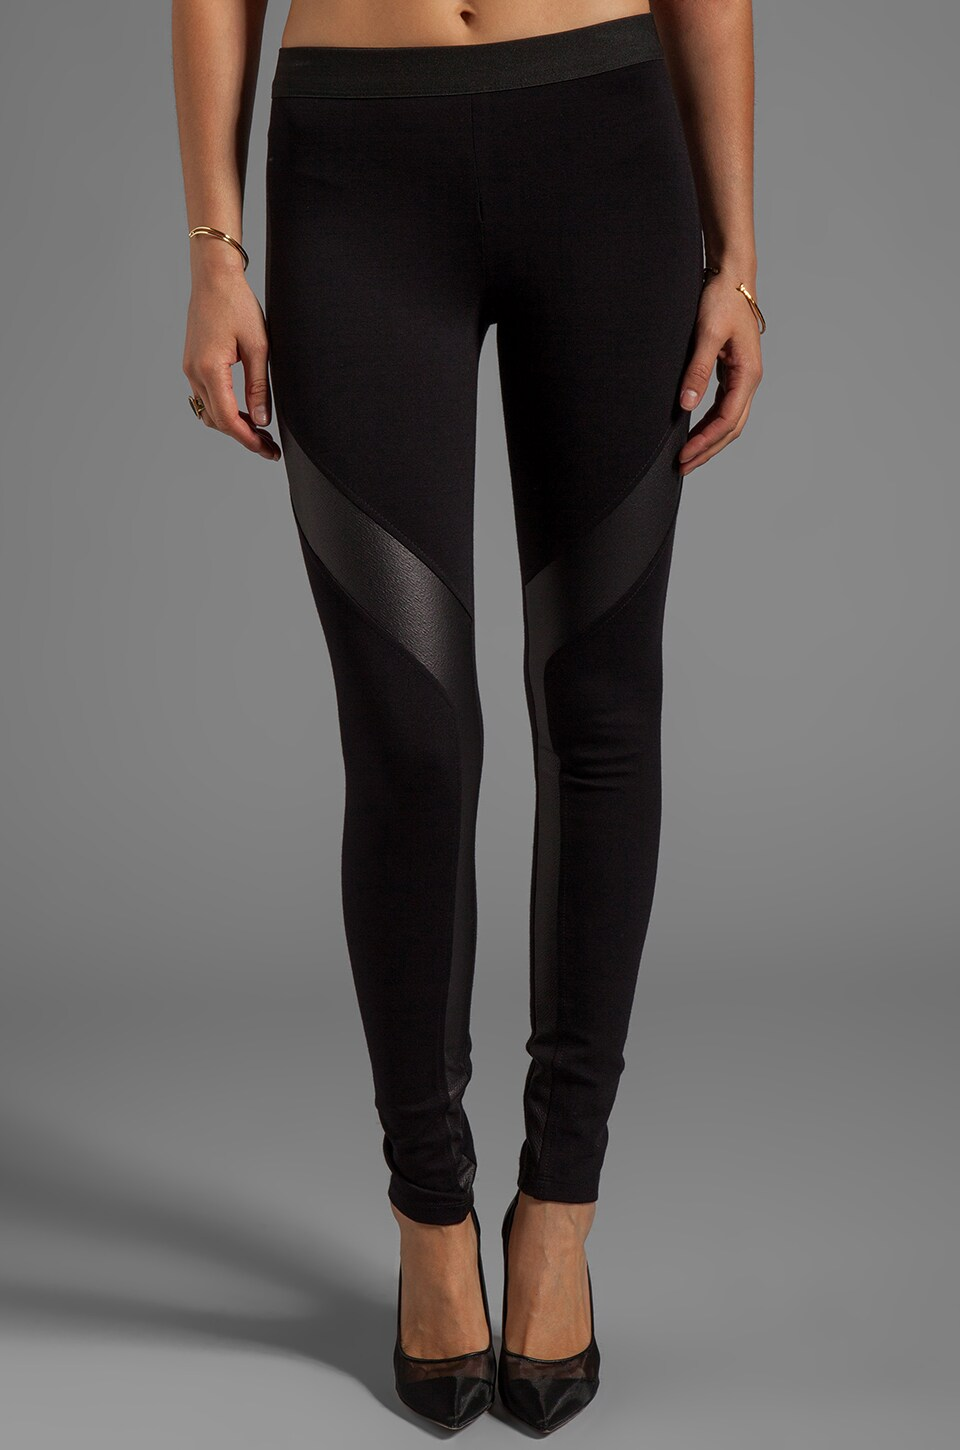 BCBGMAXAZRIA Luca Legging in Black